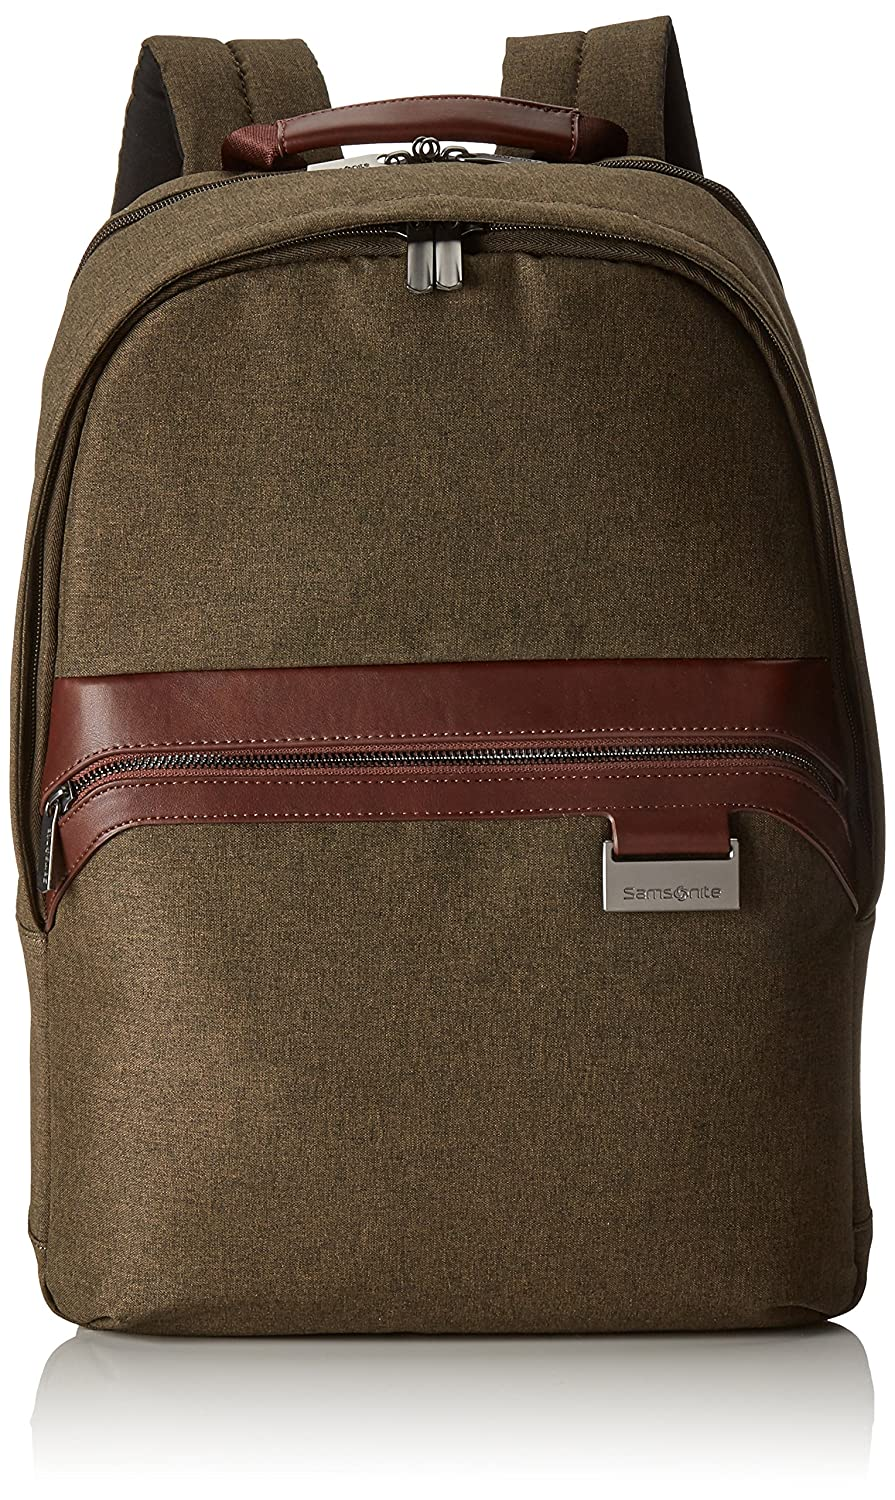 Samsonite Upstream Mochila Tipo Casual para Portátil cm L Color Marrón Natural